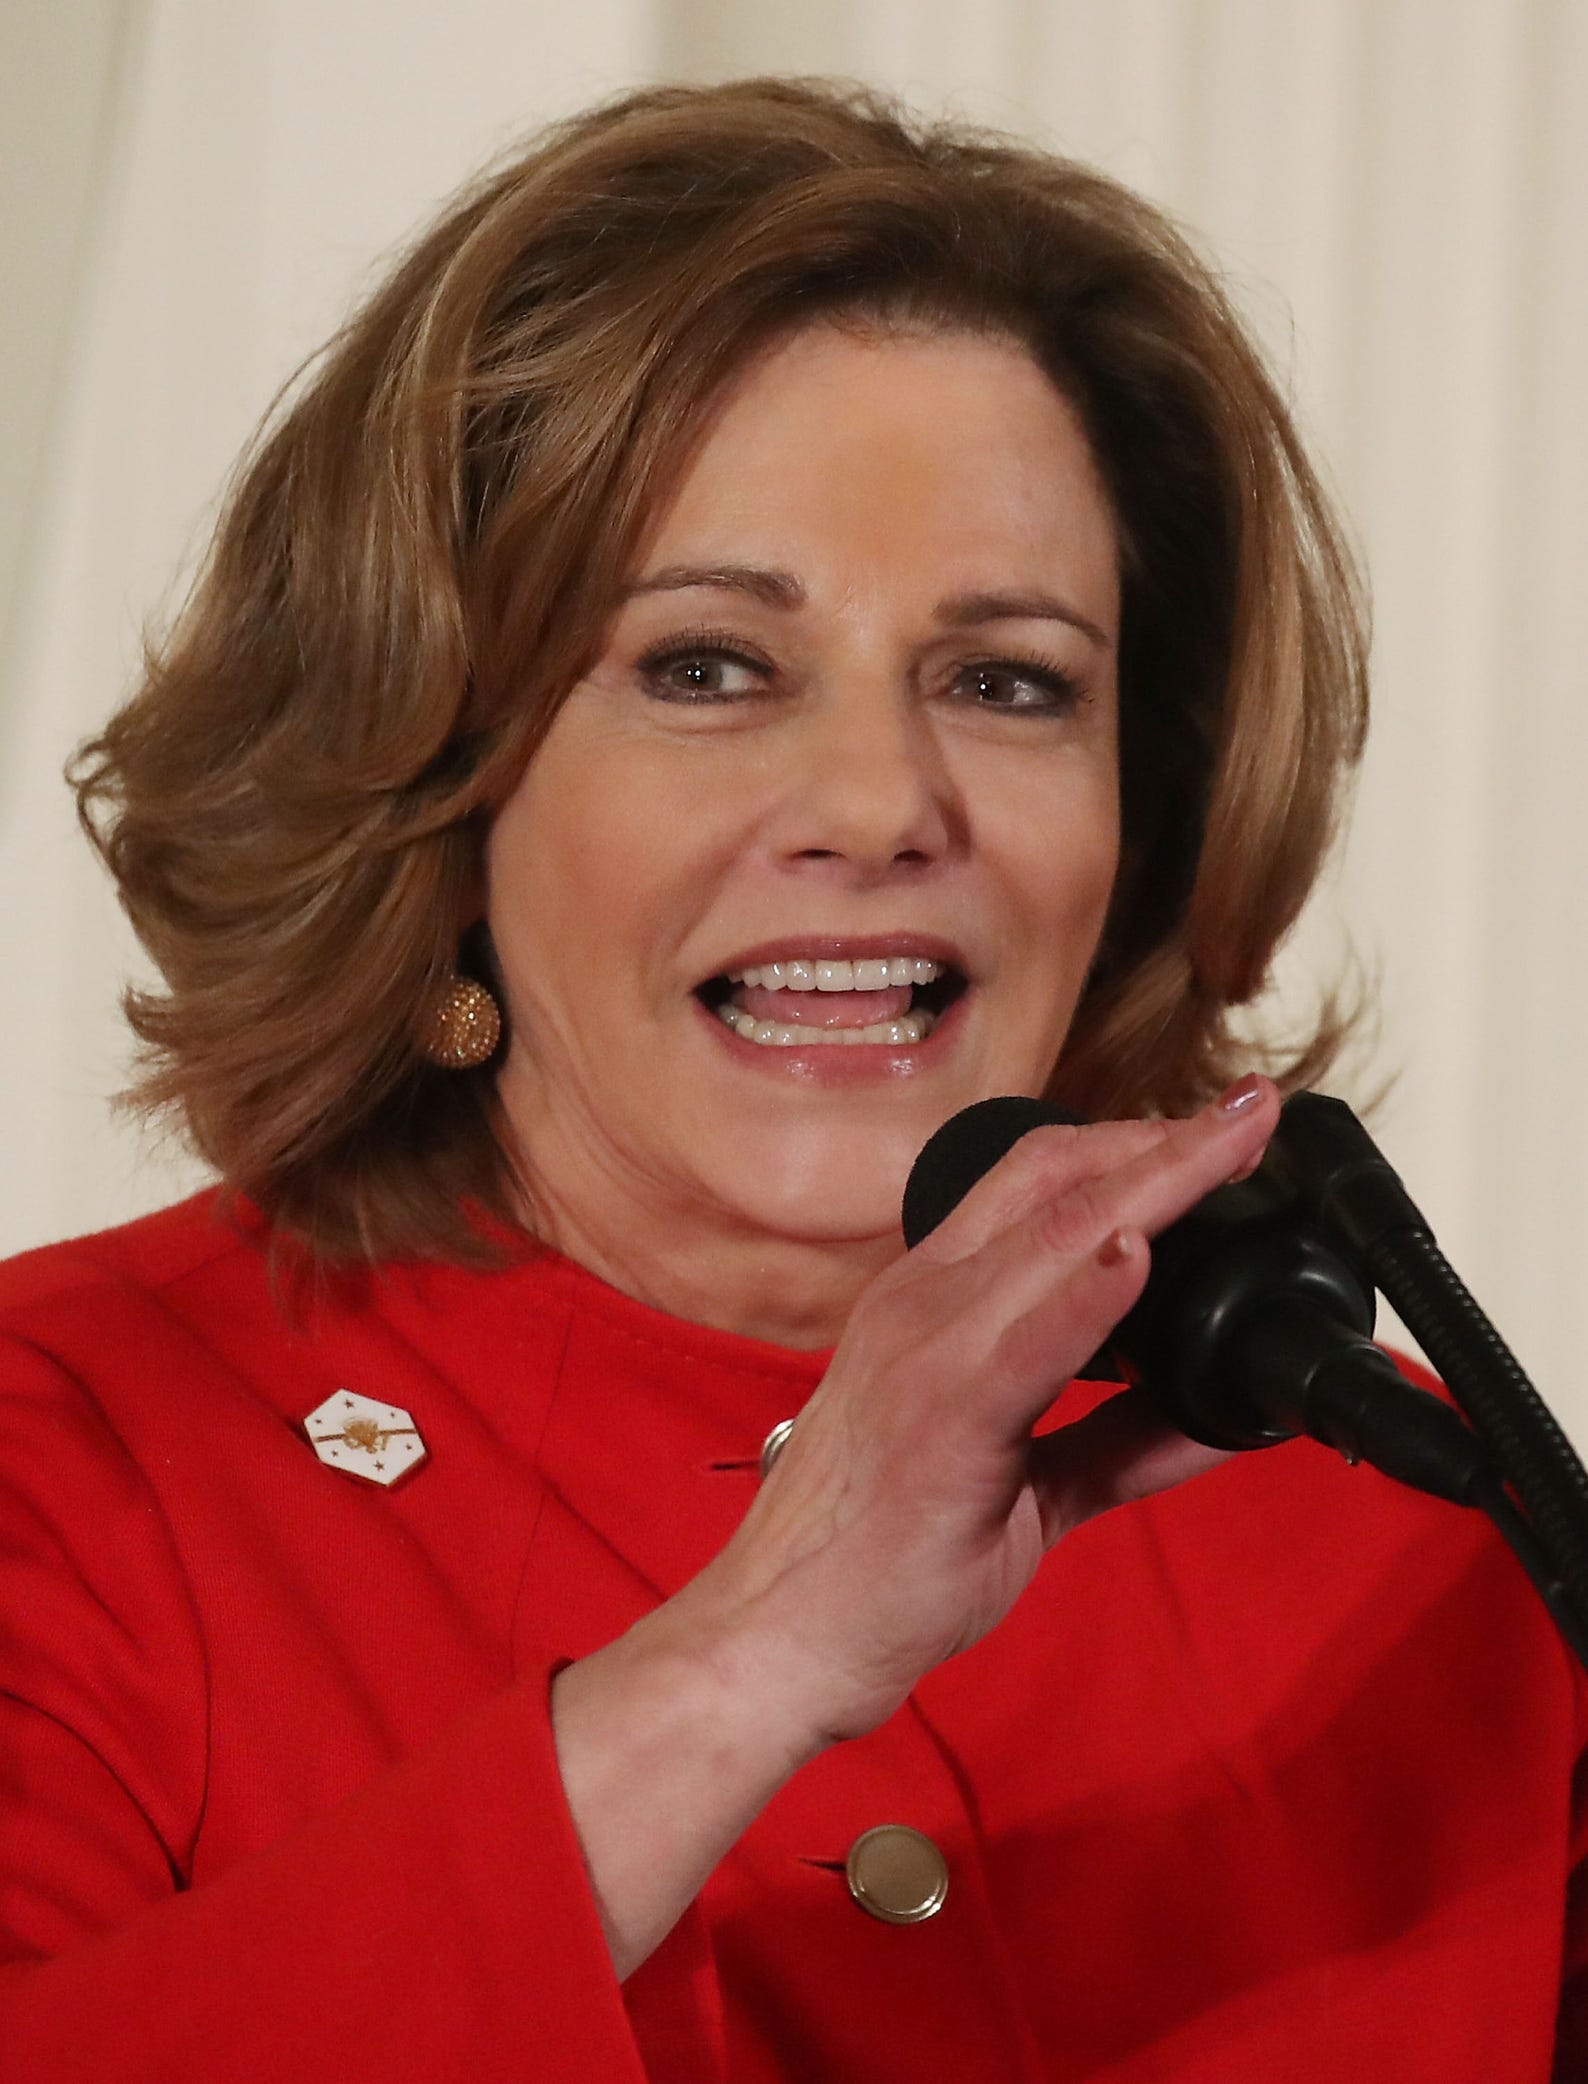 Deputy National Security Advisor, K.T. McFarland speaks during an event celebrating Women's History Month, in the East Room at the White House, March 29, 2017, in Washington, DC. On April 9, 2017, McFarland was asked to step down and serve instead as ambassador to Singapore.